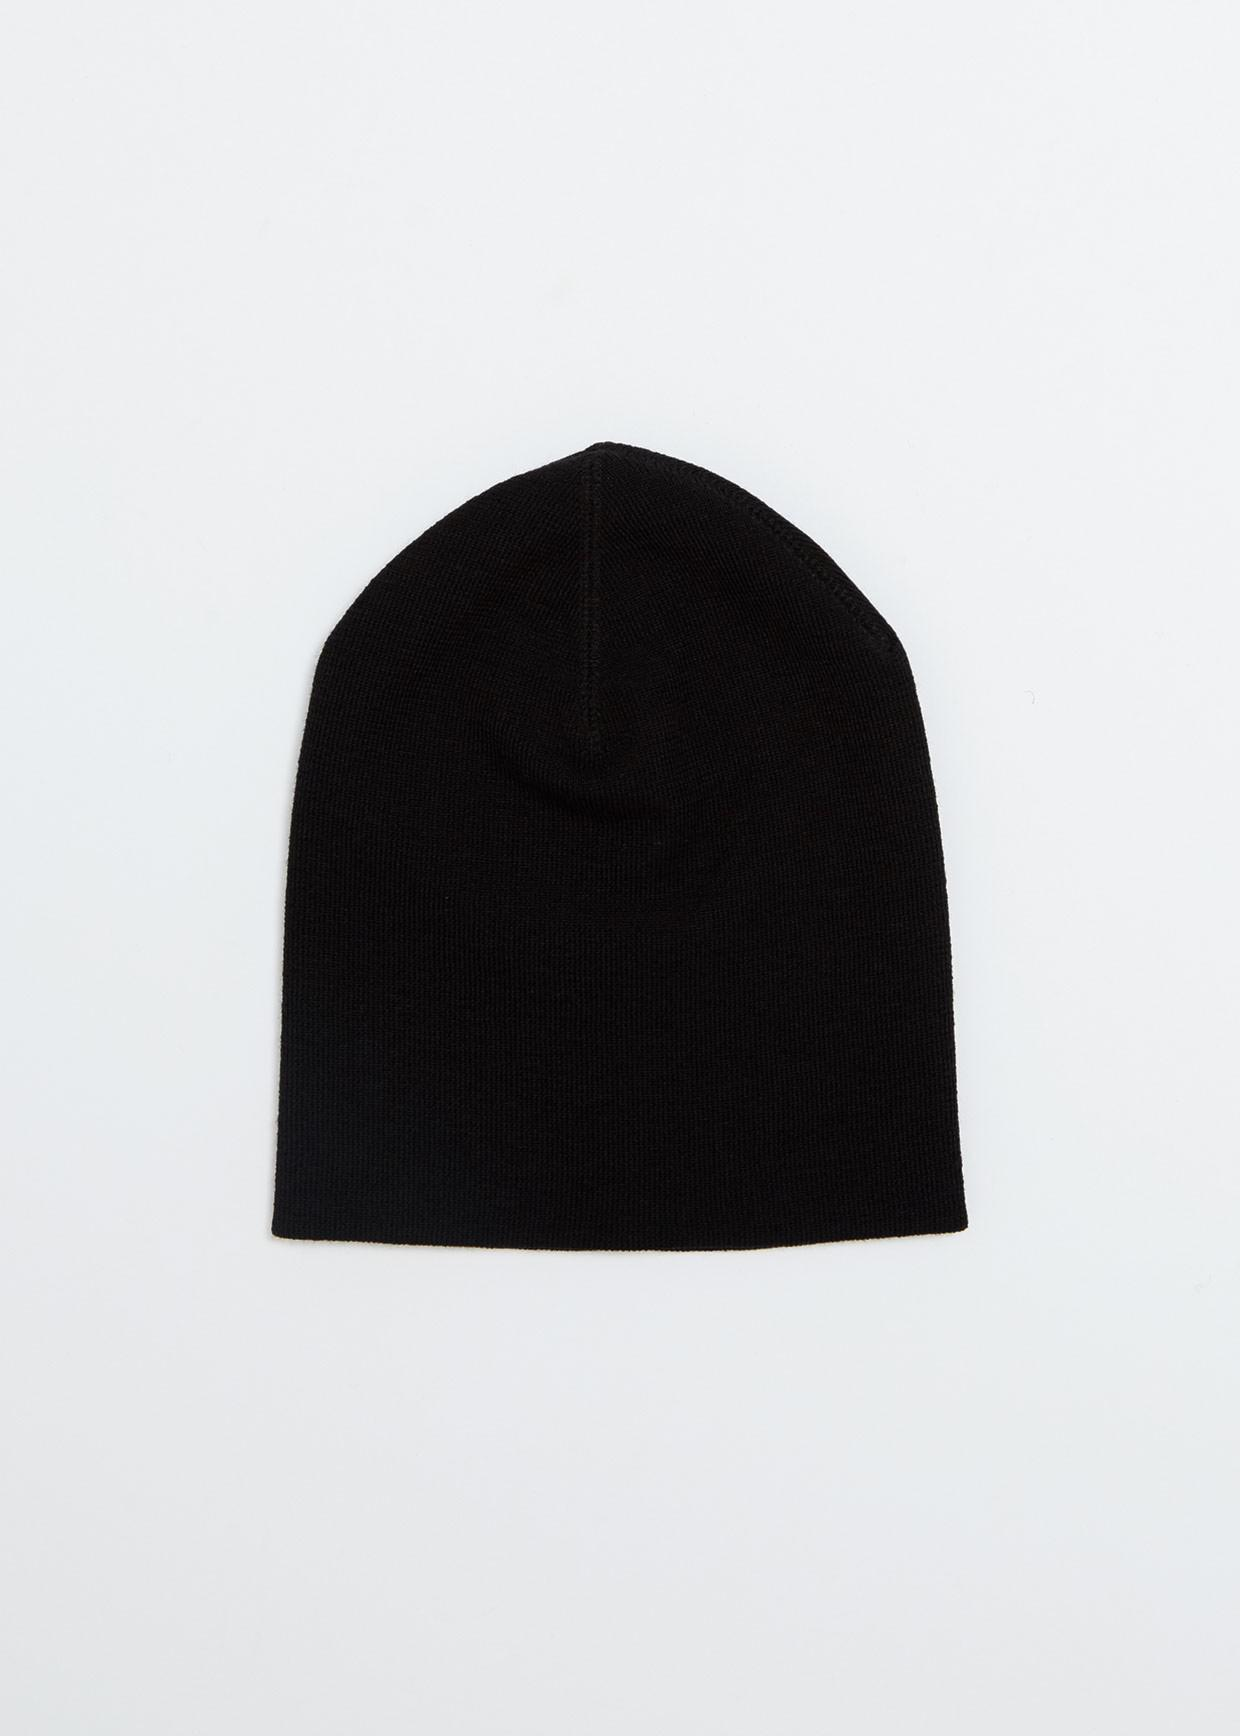 88addc9d26979 Lyst - Our Legacy Classic Knit Hat in Black for Men